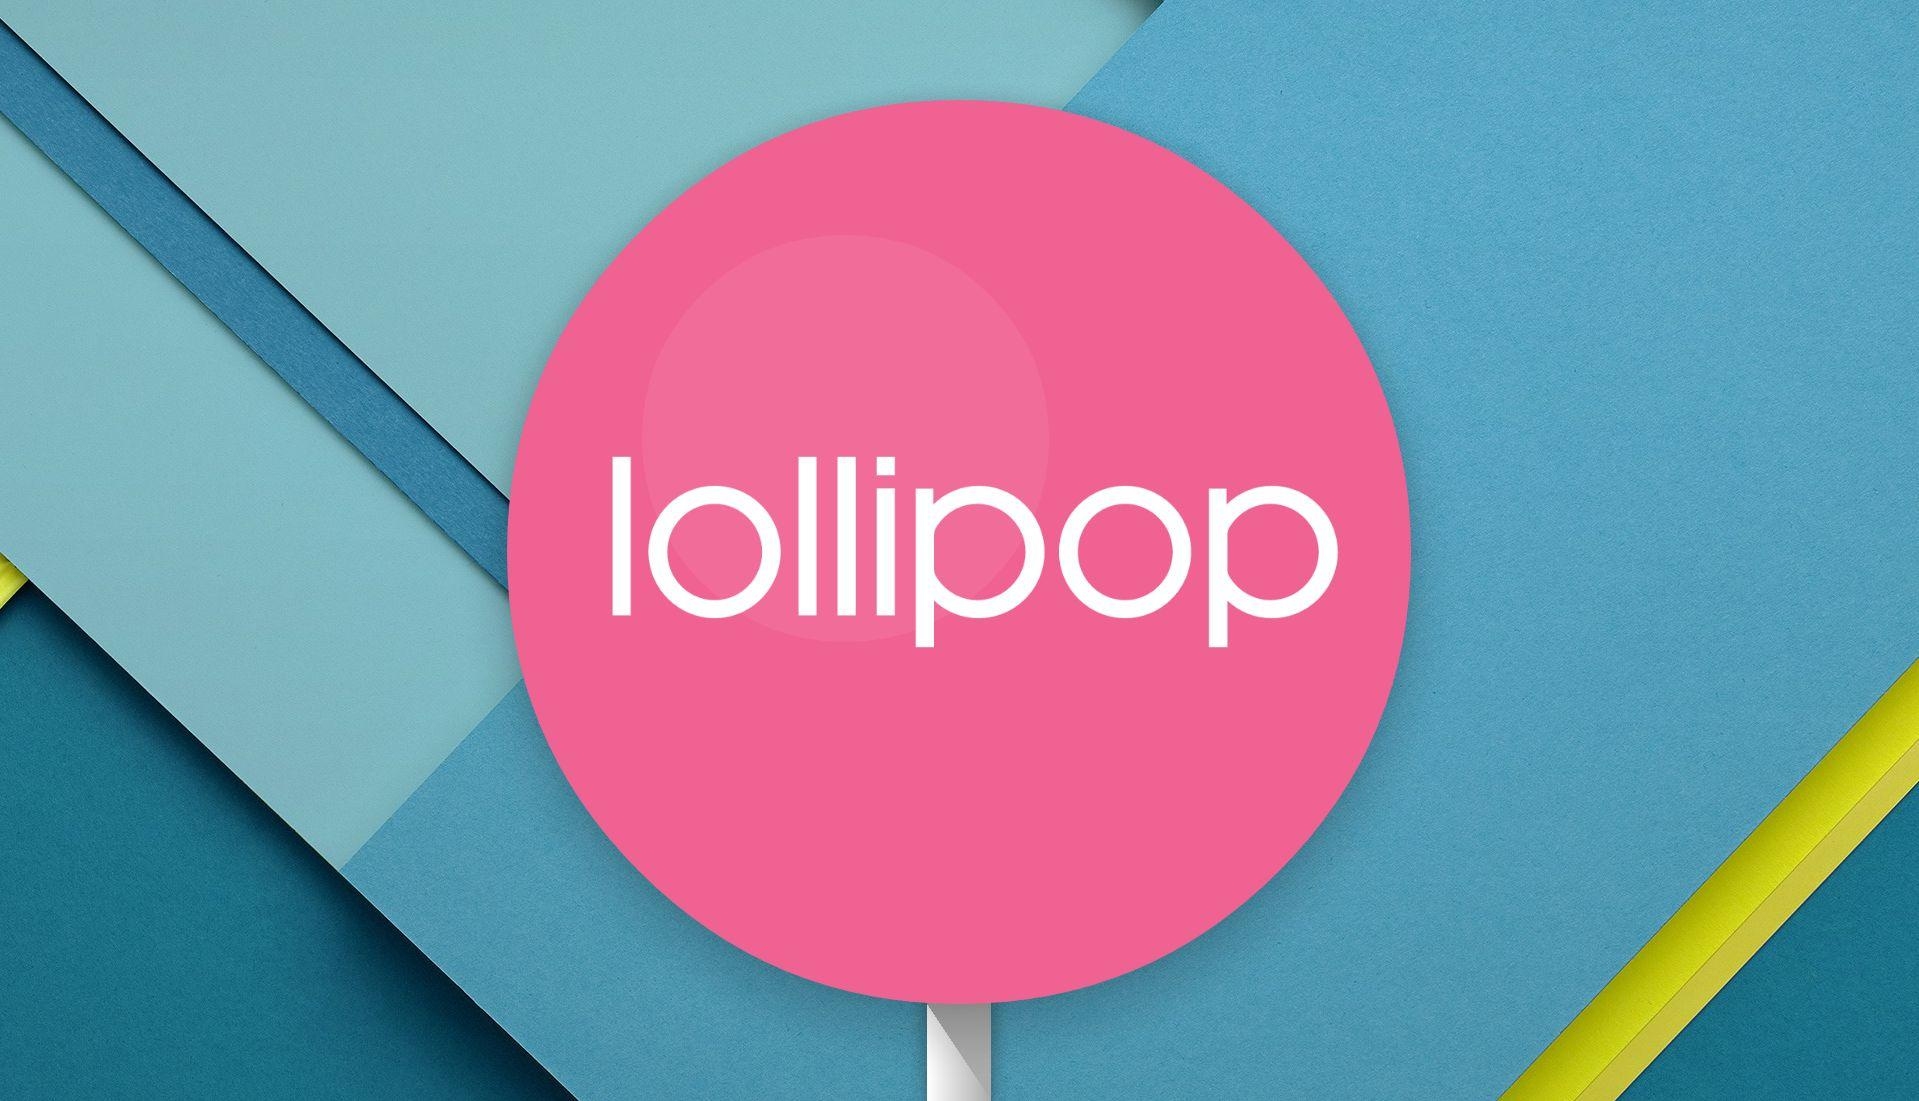 How to install Android lollipop on VMware?